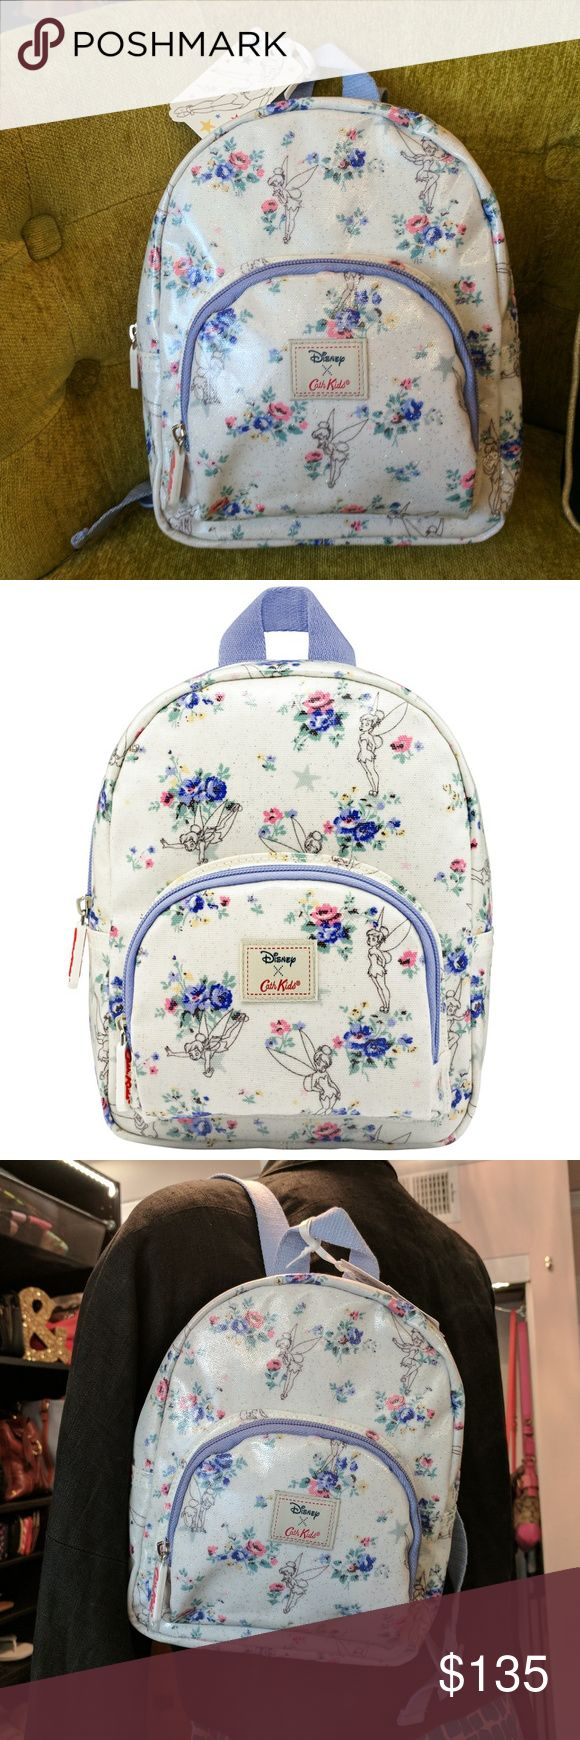 Cath Kidston Disney Tinker Bell Mini Backpack Cath Kidston Disney Peter Pan TINKER BELL KIDS GLITTER MINI RUCKSACK 7.5 x 11 x 4.13 inches Front zip pocket 'This belongs to' window 100% Shiny Glitter Cotton Canvas Cotton canvas lined Adjustable webbing straps Webbing handle for easy carrying Cath Kids rubber branded puller on zipper  Brand new with tags, purchased in London at Harrod's....you currently cannot get these online, they are out of stock. 2nd photo is a stock image, the rest are…